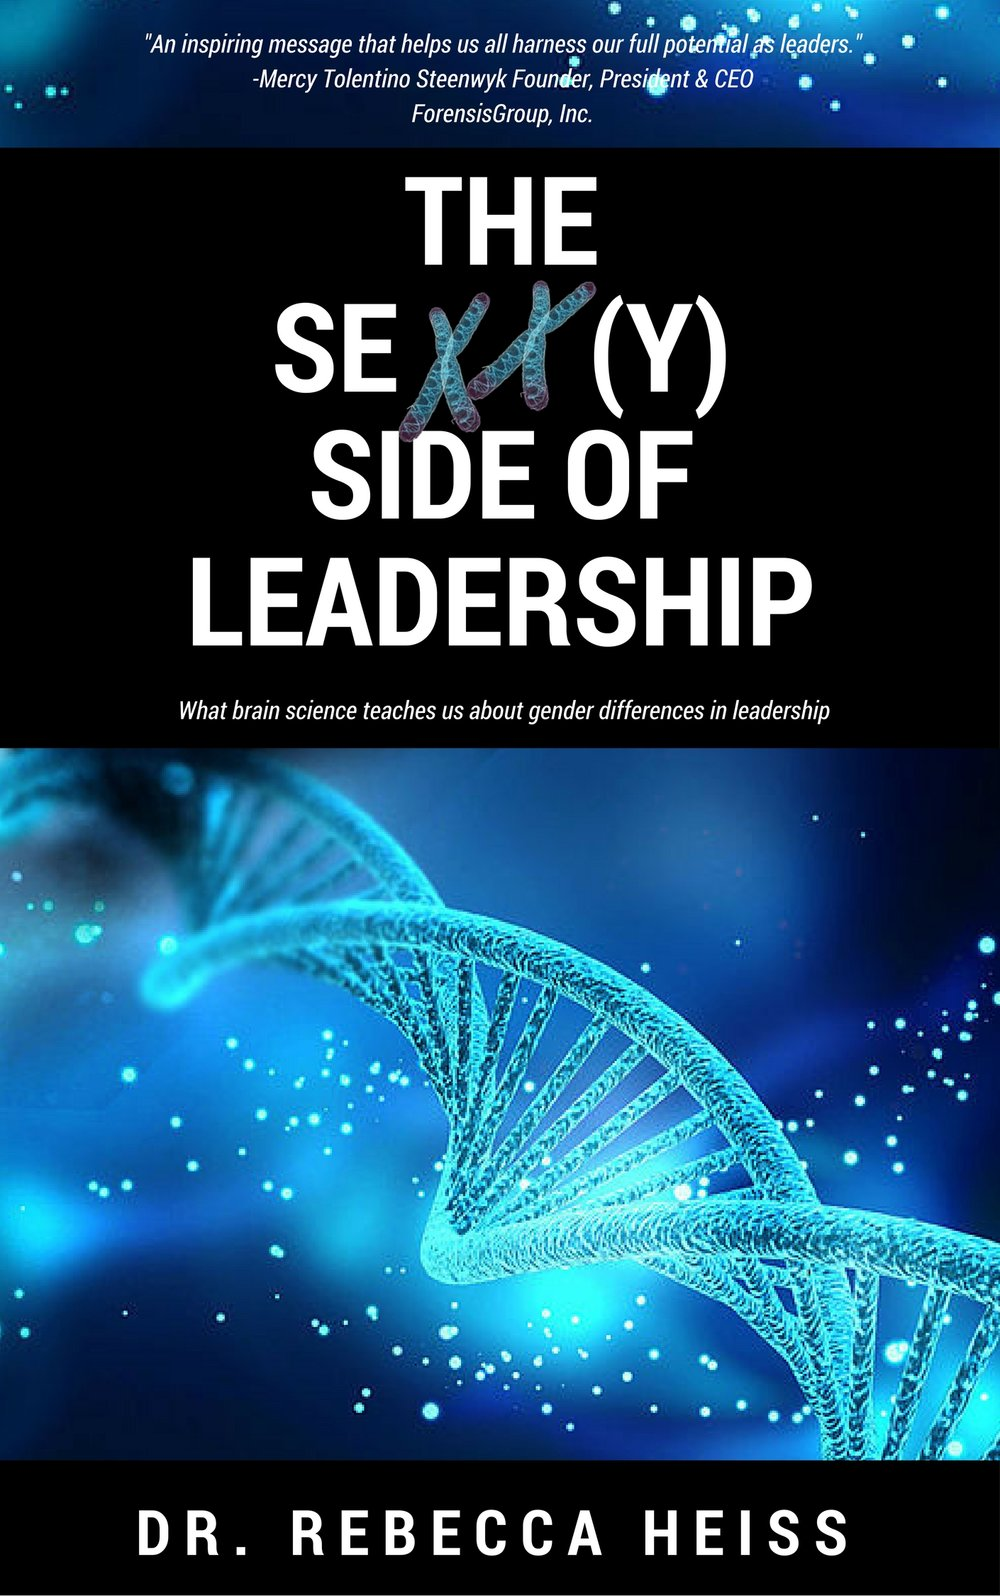 The SeXX(y) Side of Leadershipcover image